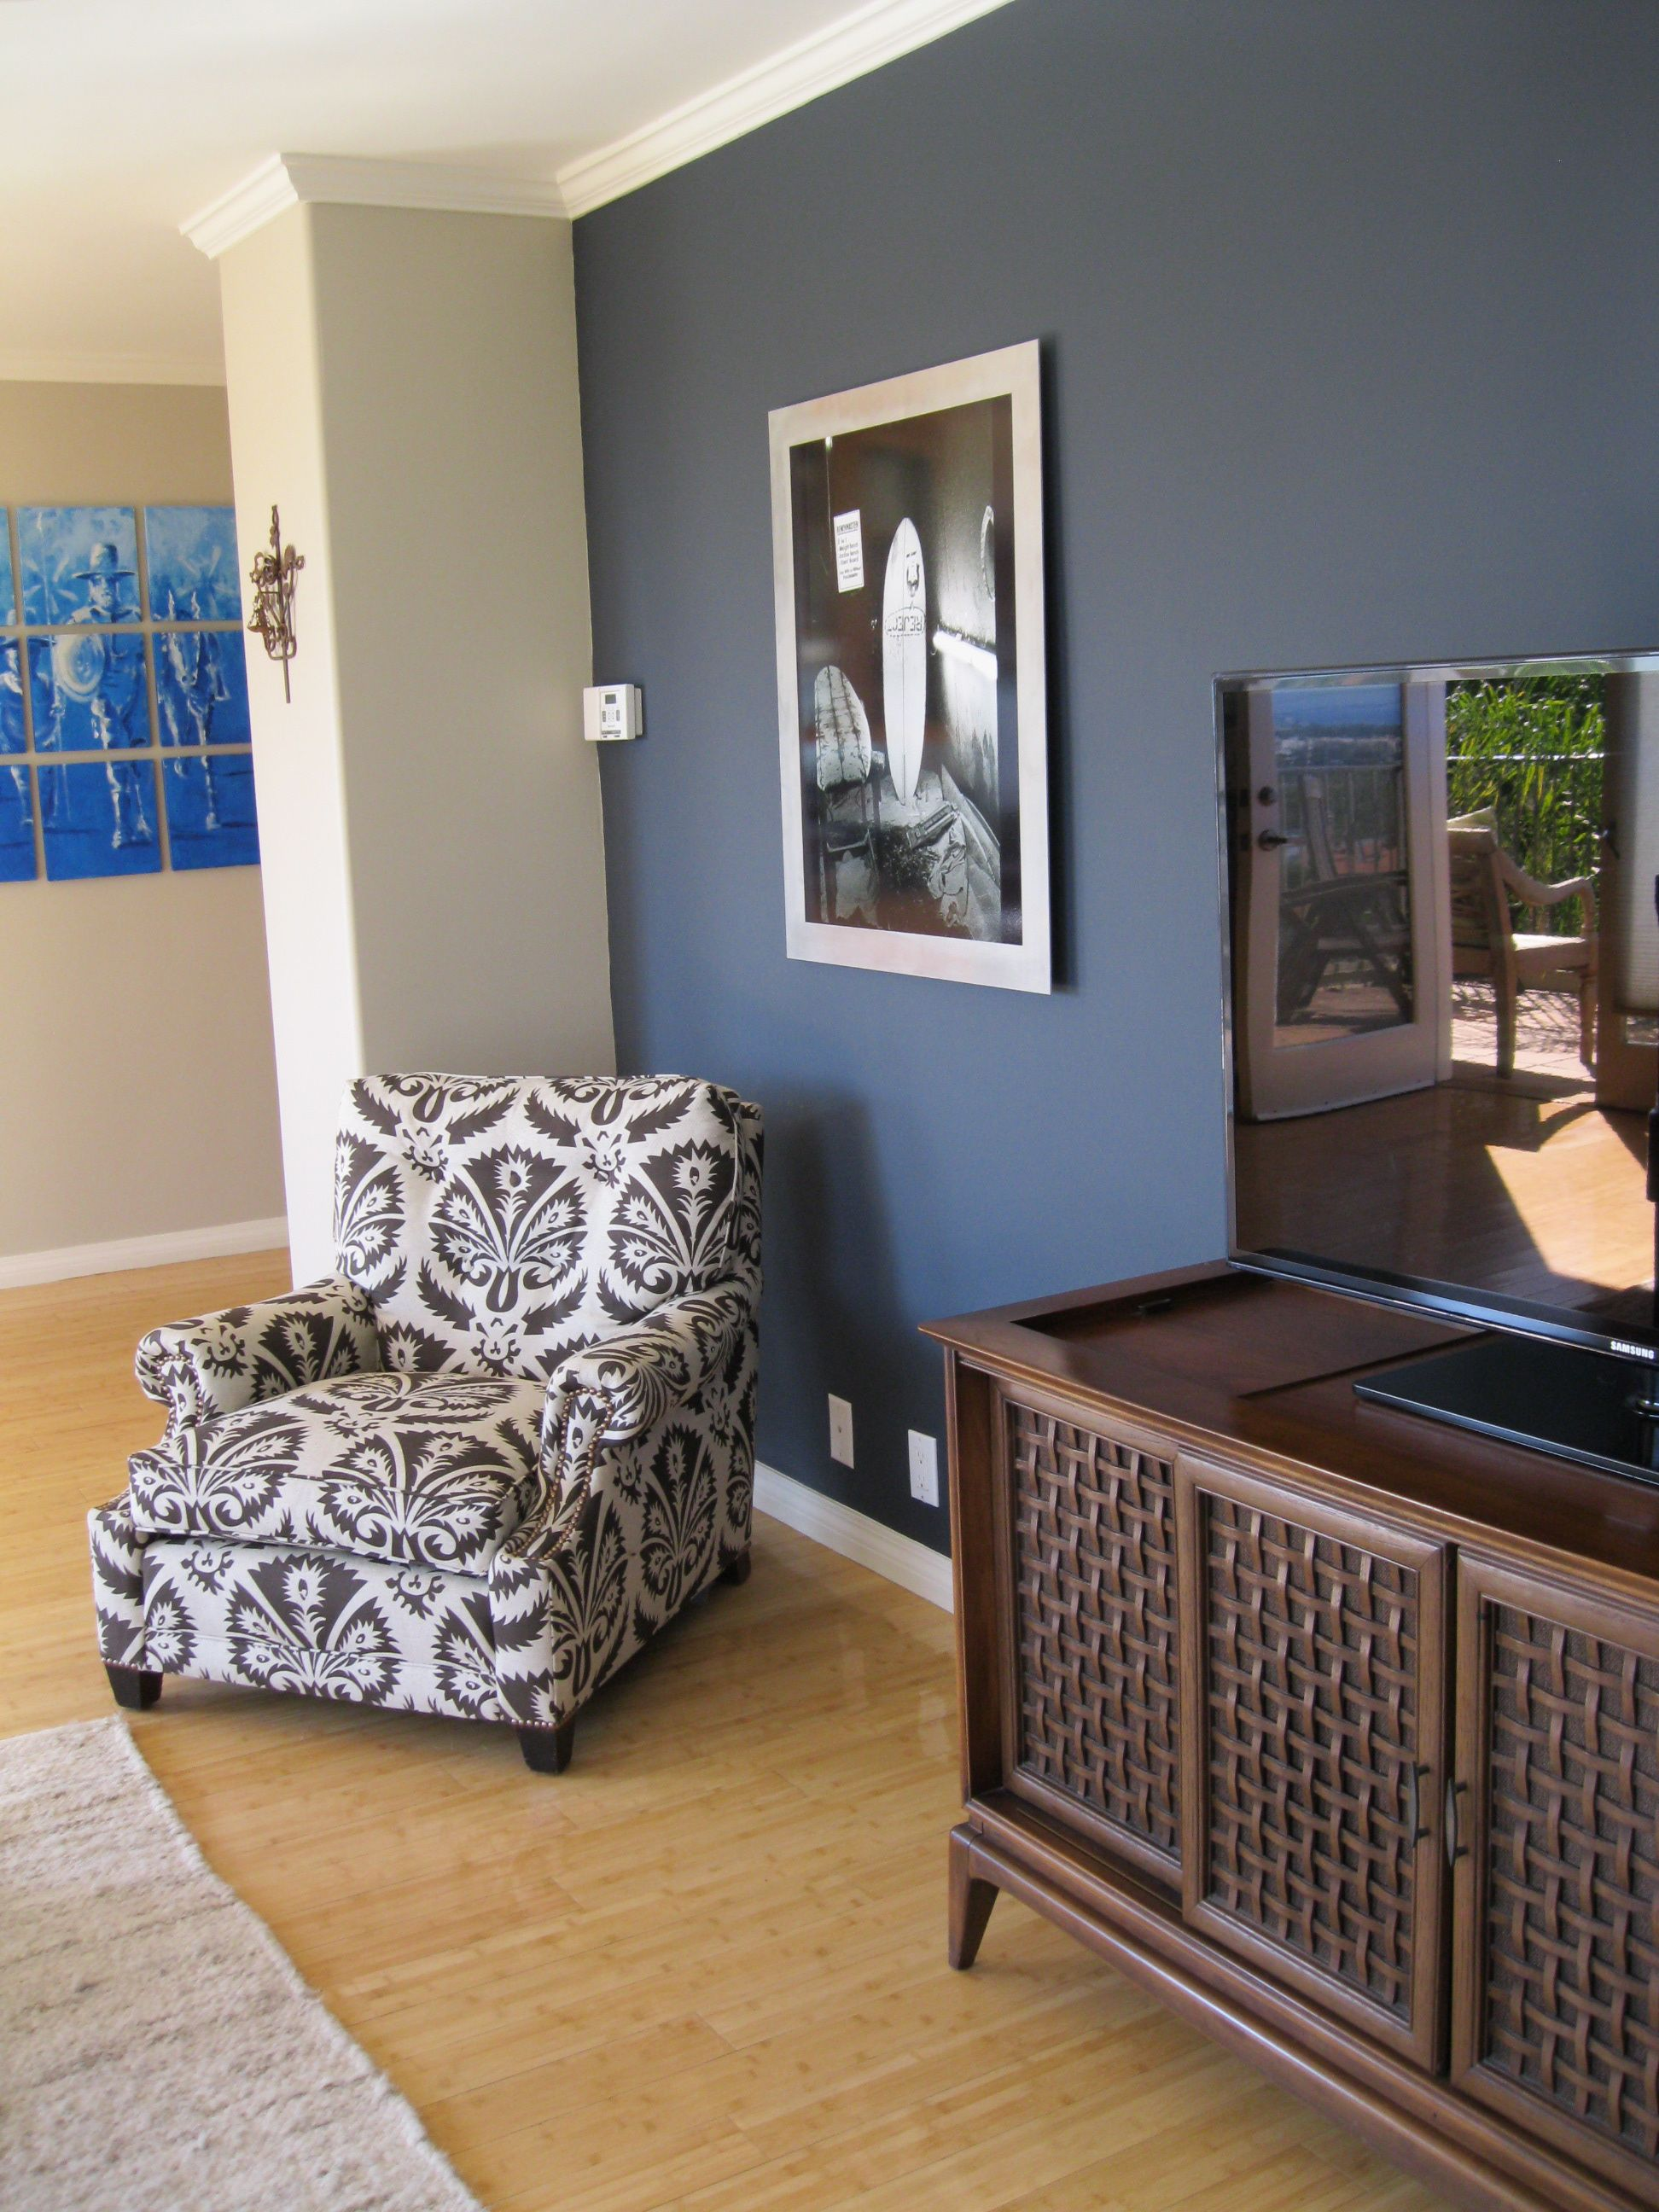 Blue Accent Wall Camoflauges Tv Love The Chair Too Check Out Image By Visiting Link Craftideasforhomedecor